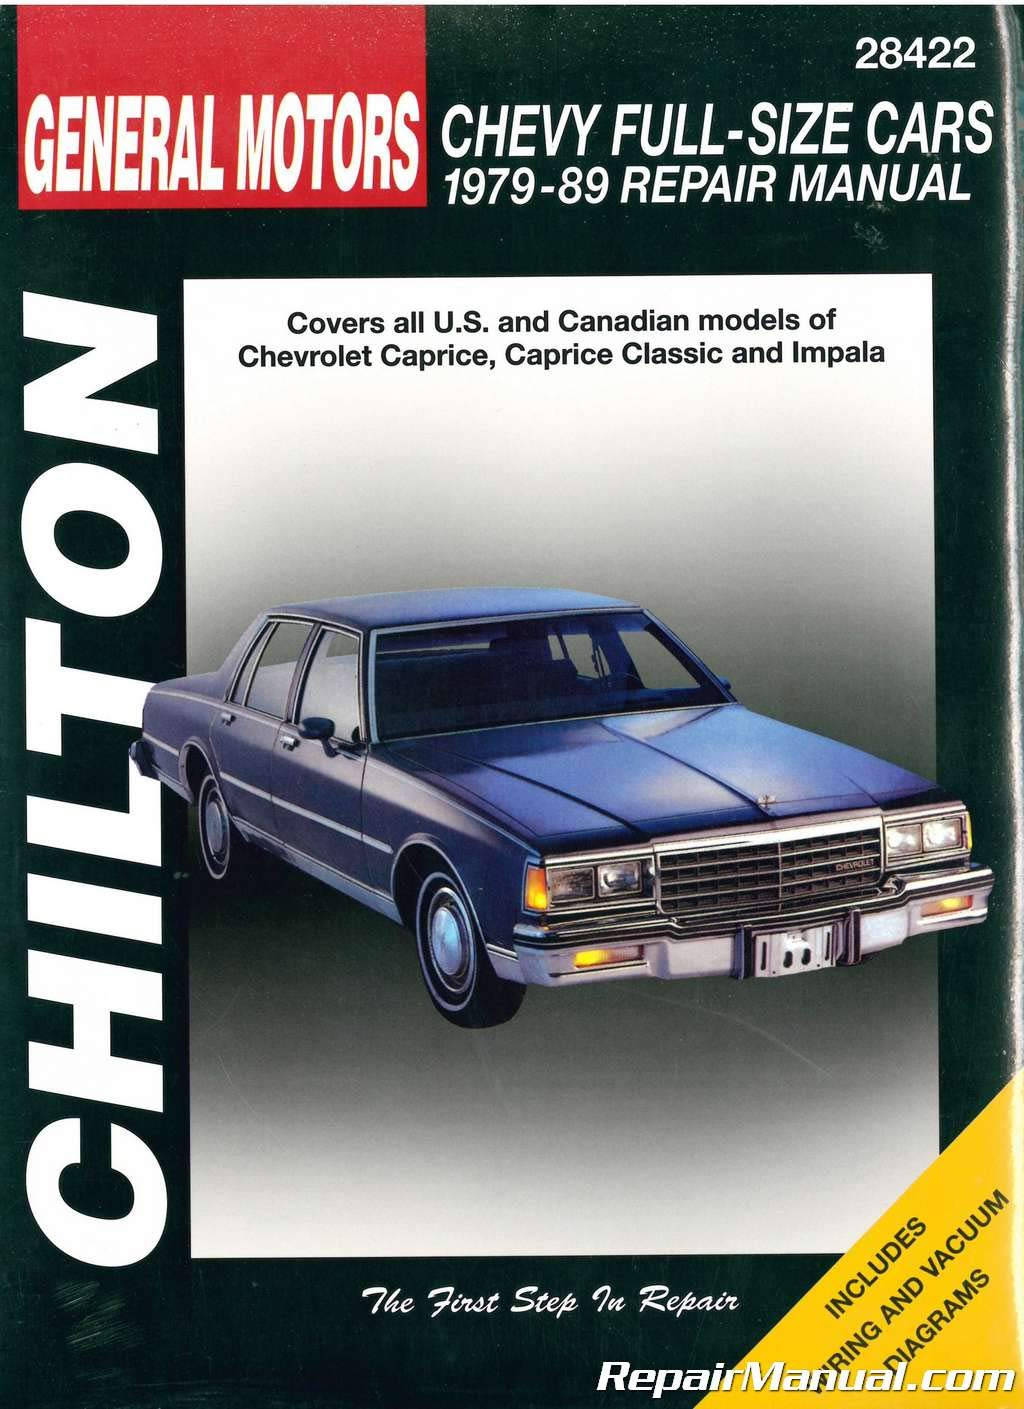 Download CH28422 Chilton Chevrolet Full-Size Cars 1979-1989 Repair Manual ebook